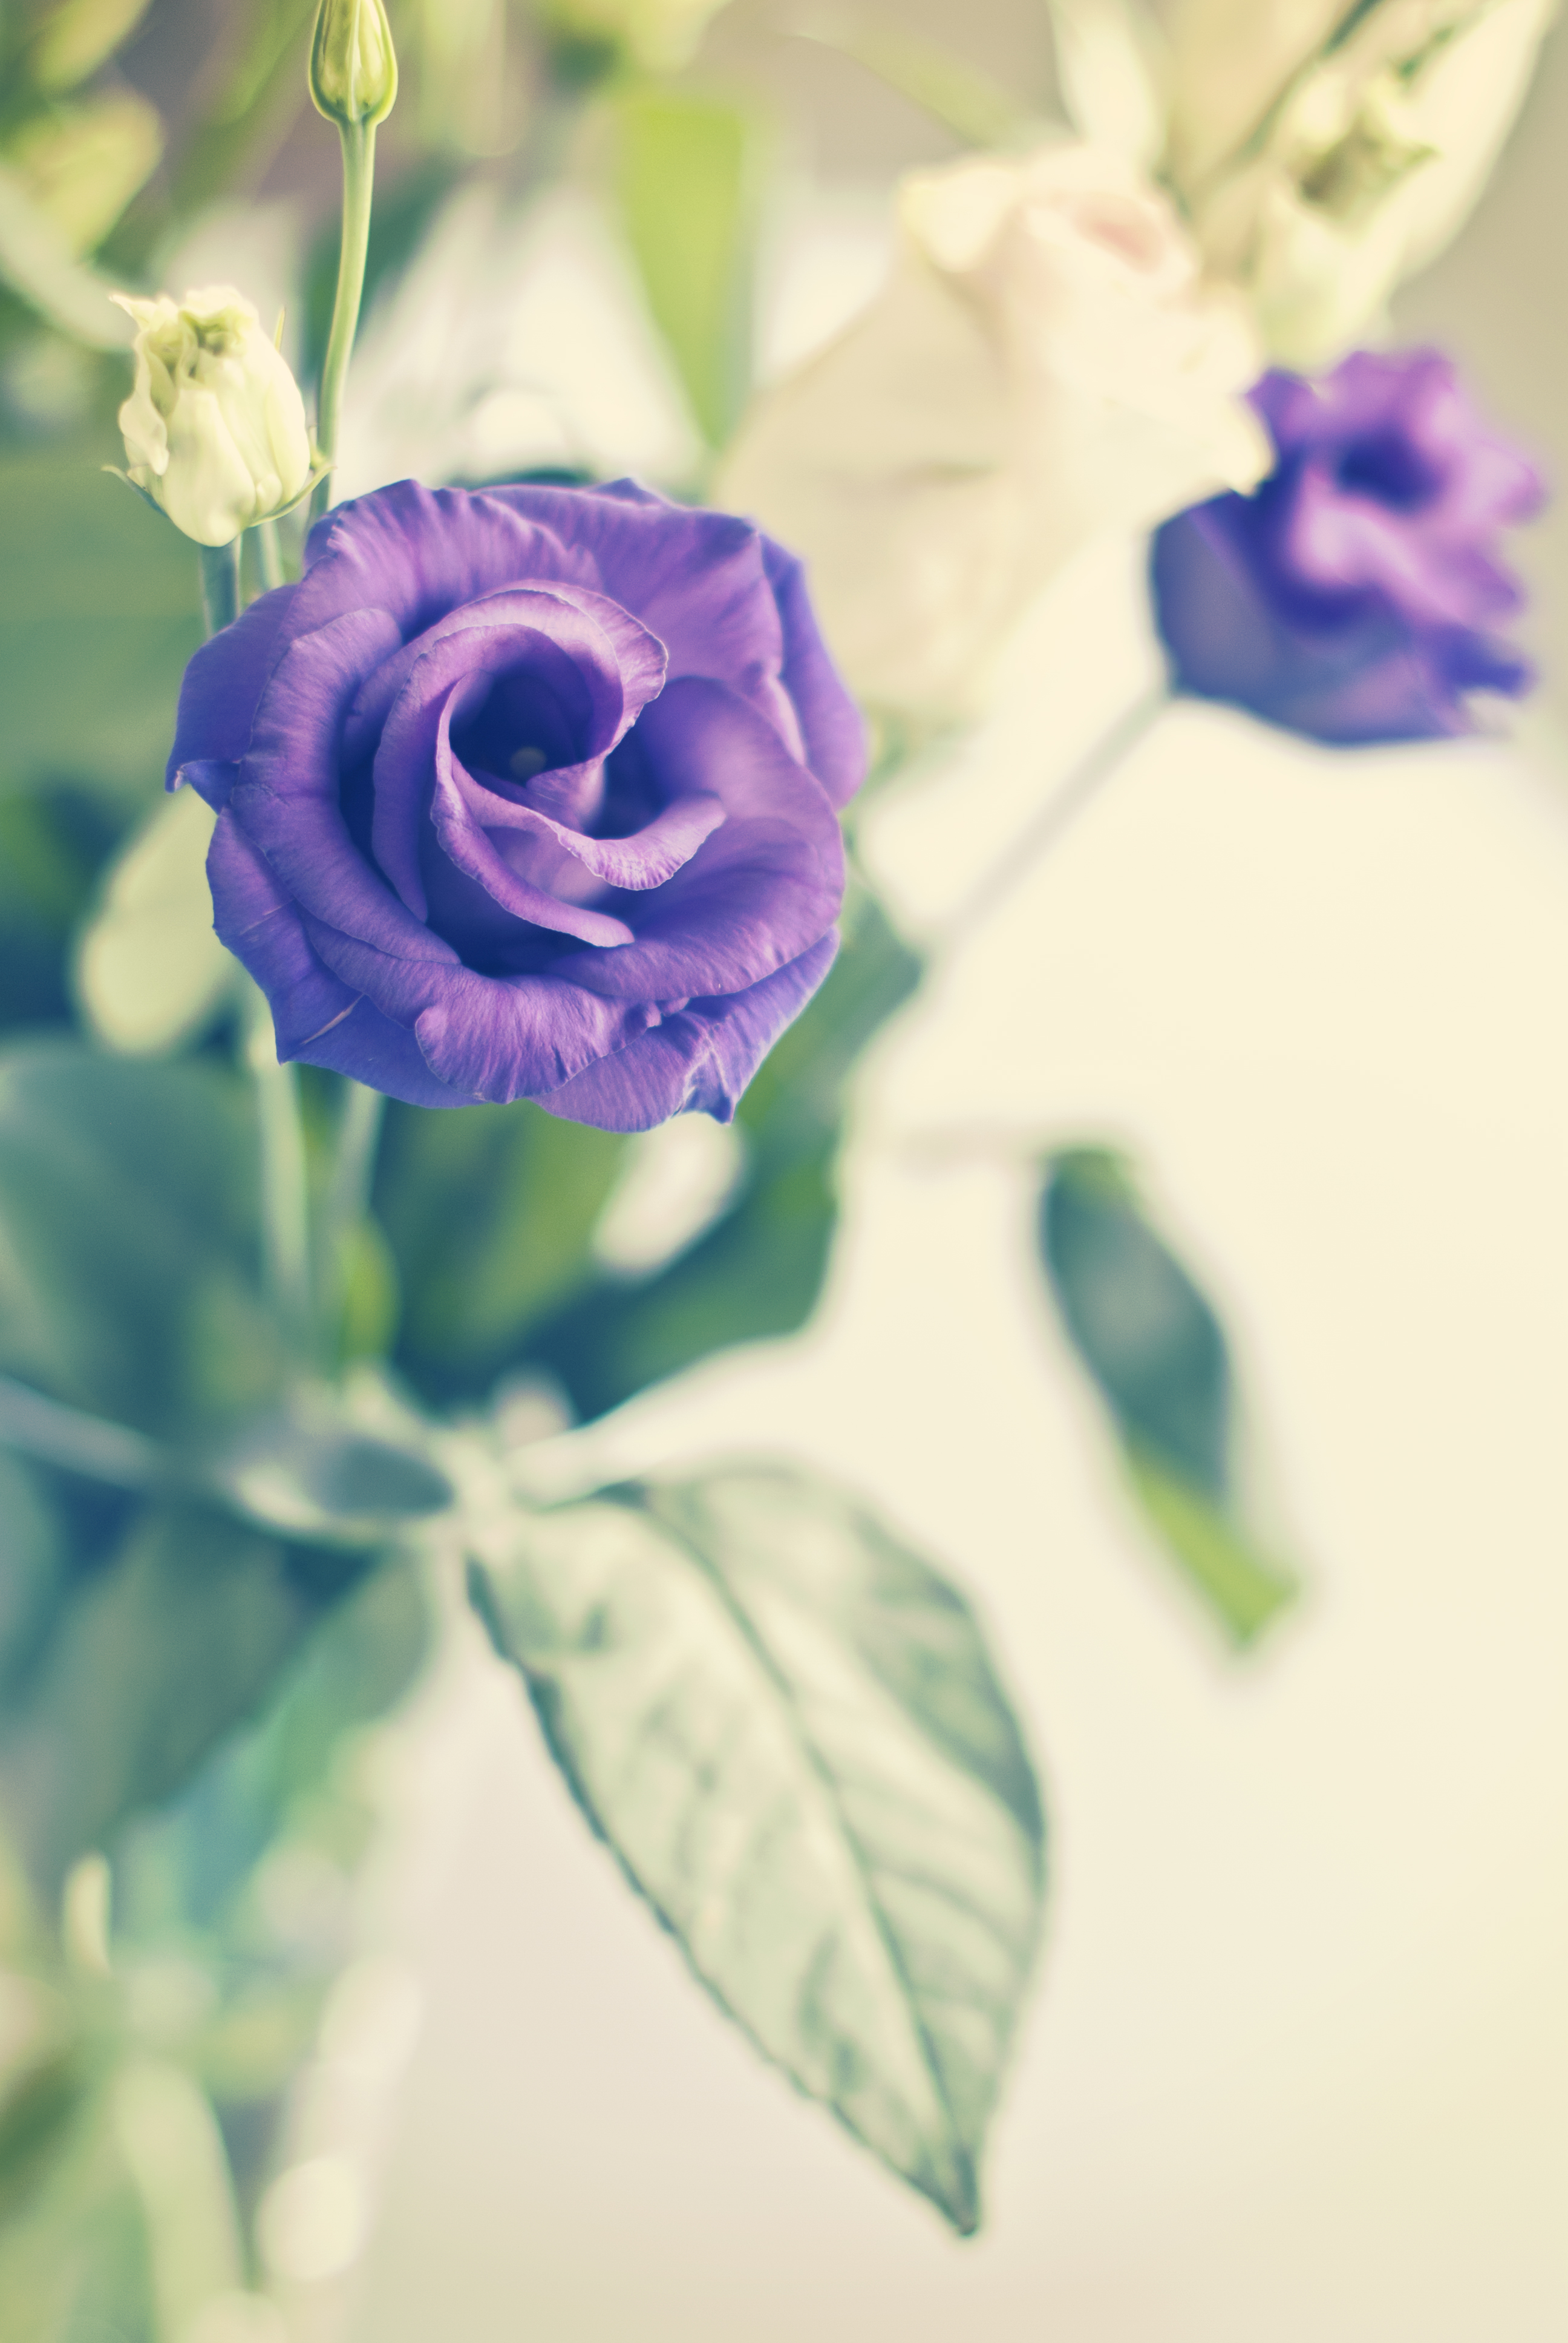 157695 Screensavers and Wallpapers Purple for phone. Download Flowers, Violet, Flower, Plant, Rose Flower, Rose, Bloom, Flowering, Purple, Decorative pictures for free